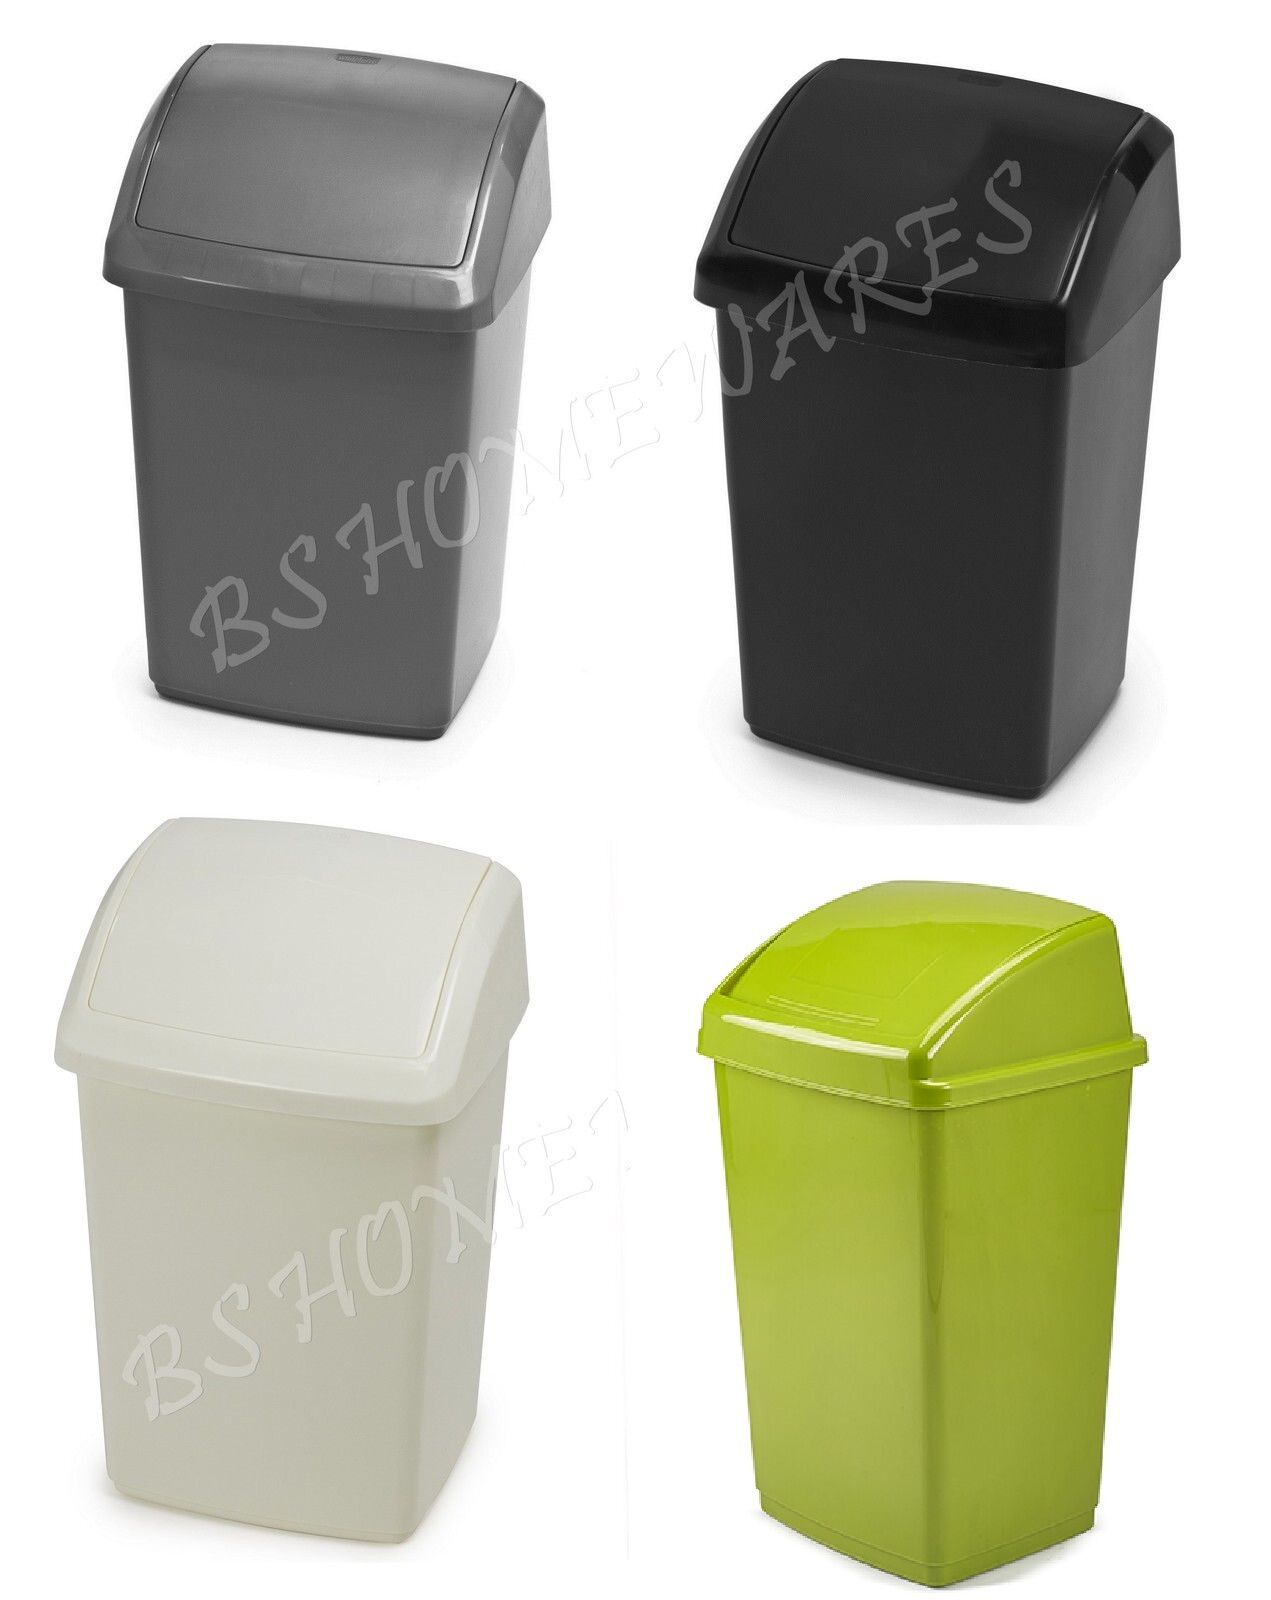 18L Swing Bin White Small Plastic Rubbish Waste Kitchen Home Office With Lid